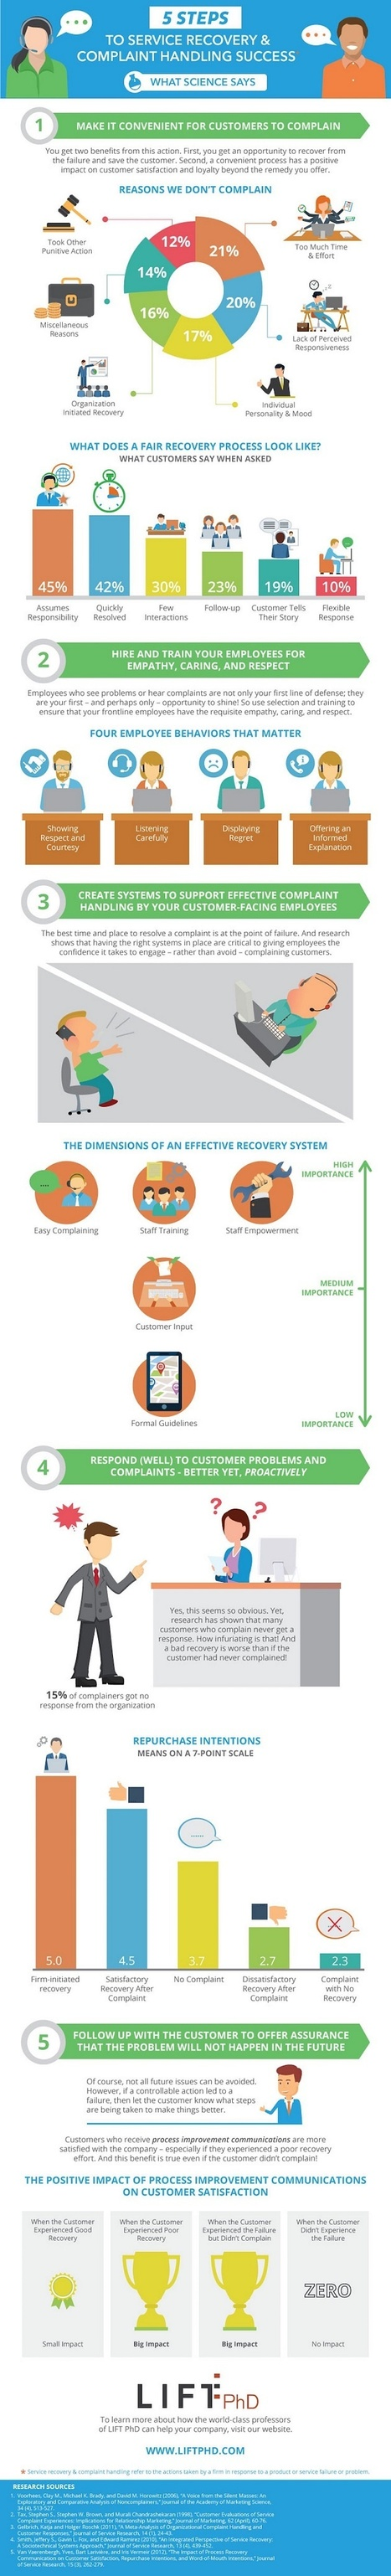 Five Steps to Service Recovery and Complaint-Handling Success [Infographic] | New Customer & Employee Management | Scoop.it